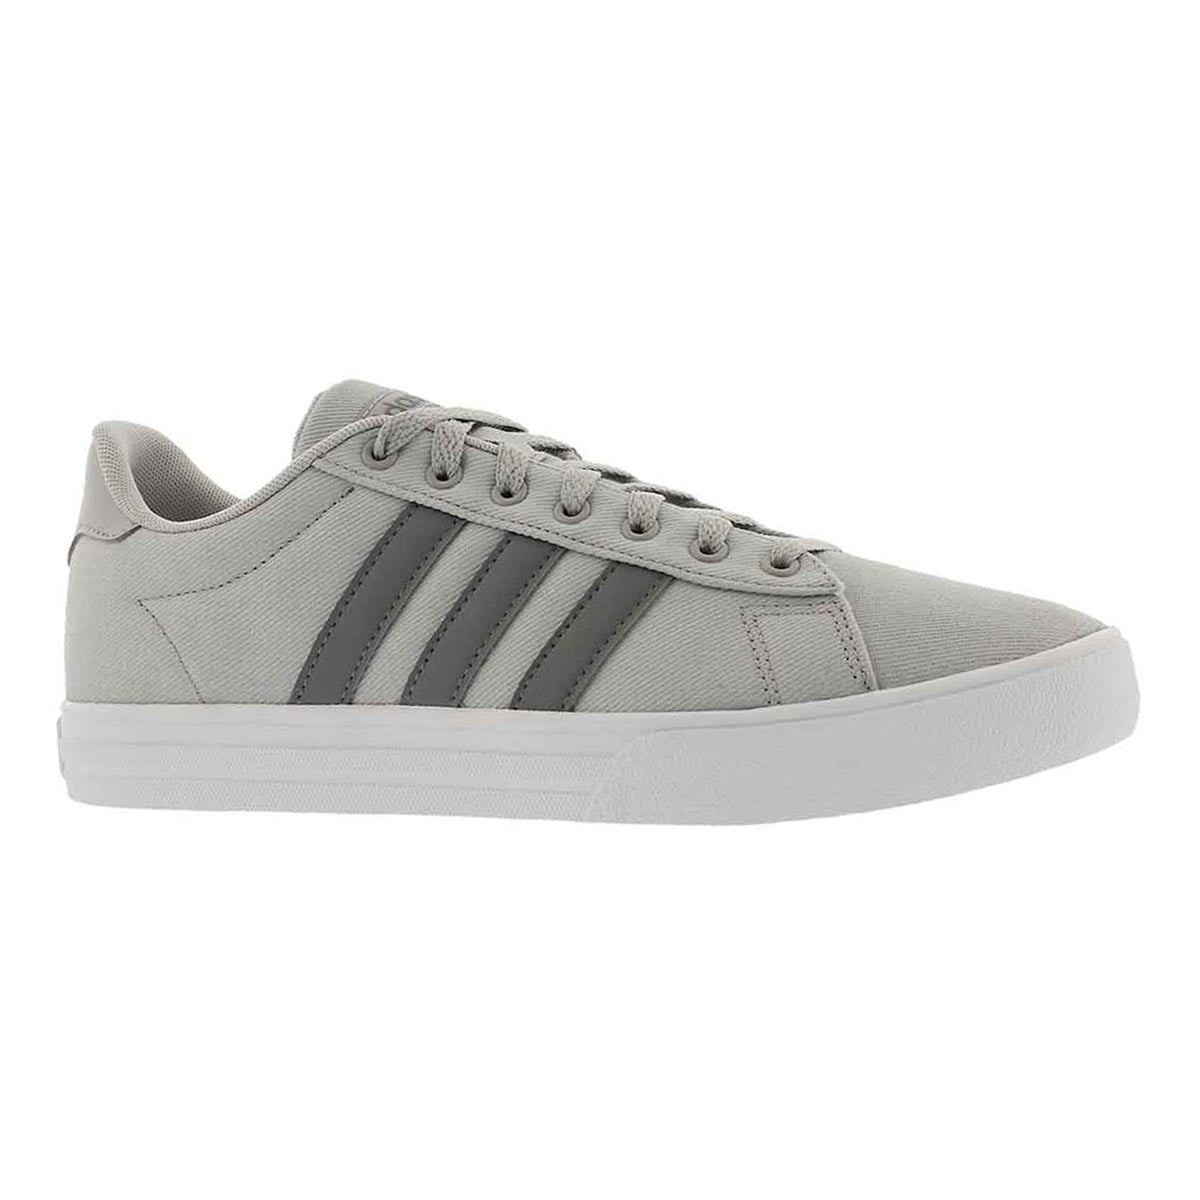 Men's DAILY 2.0 grey/white sneakers